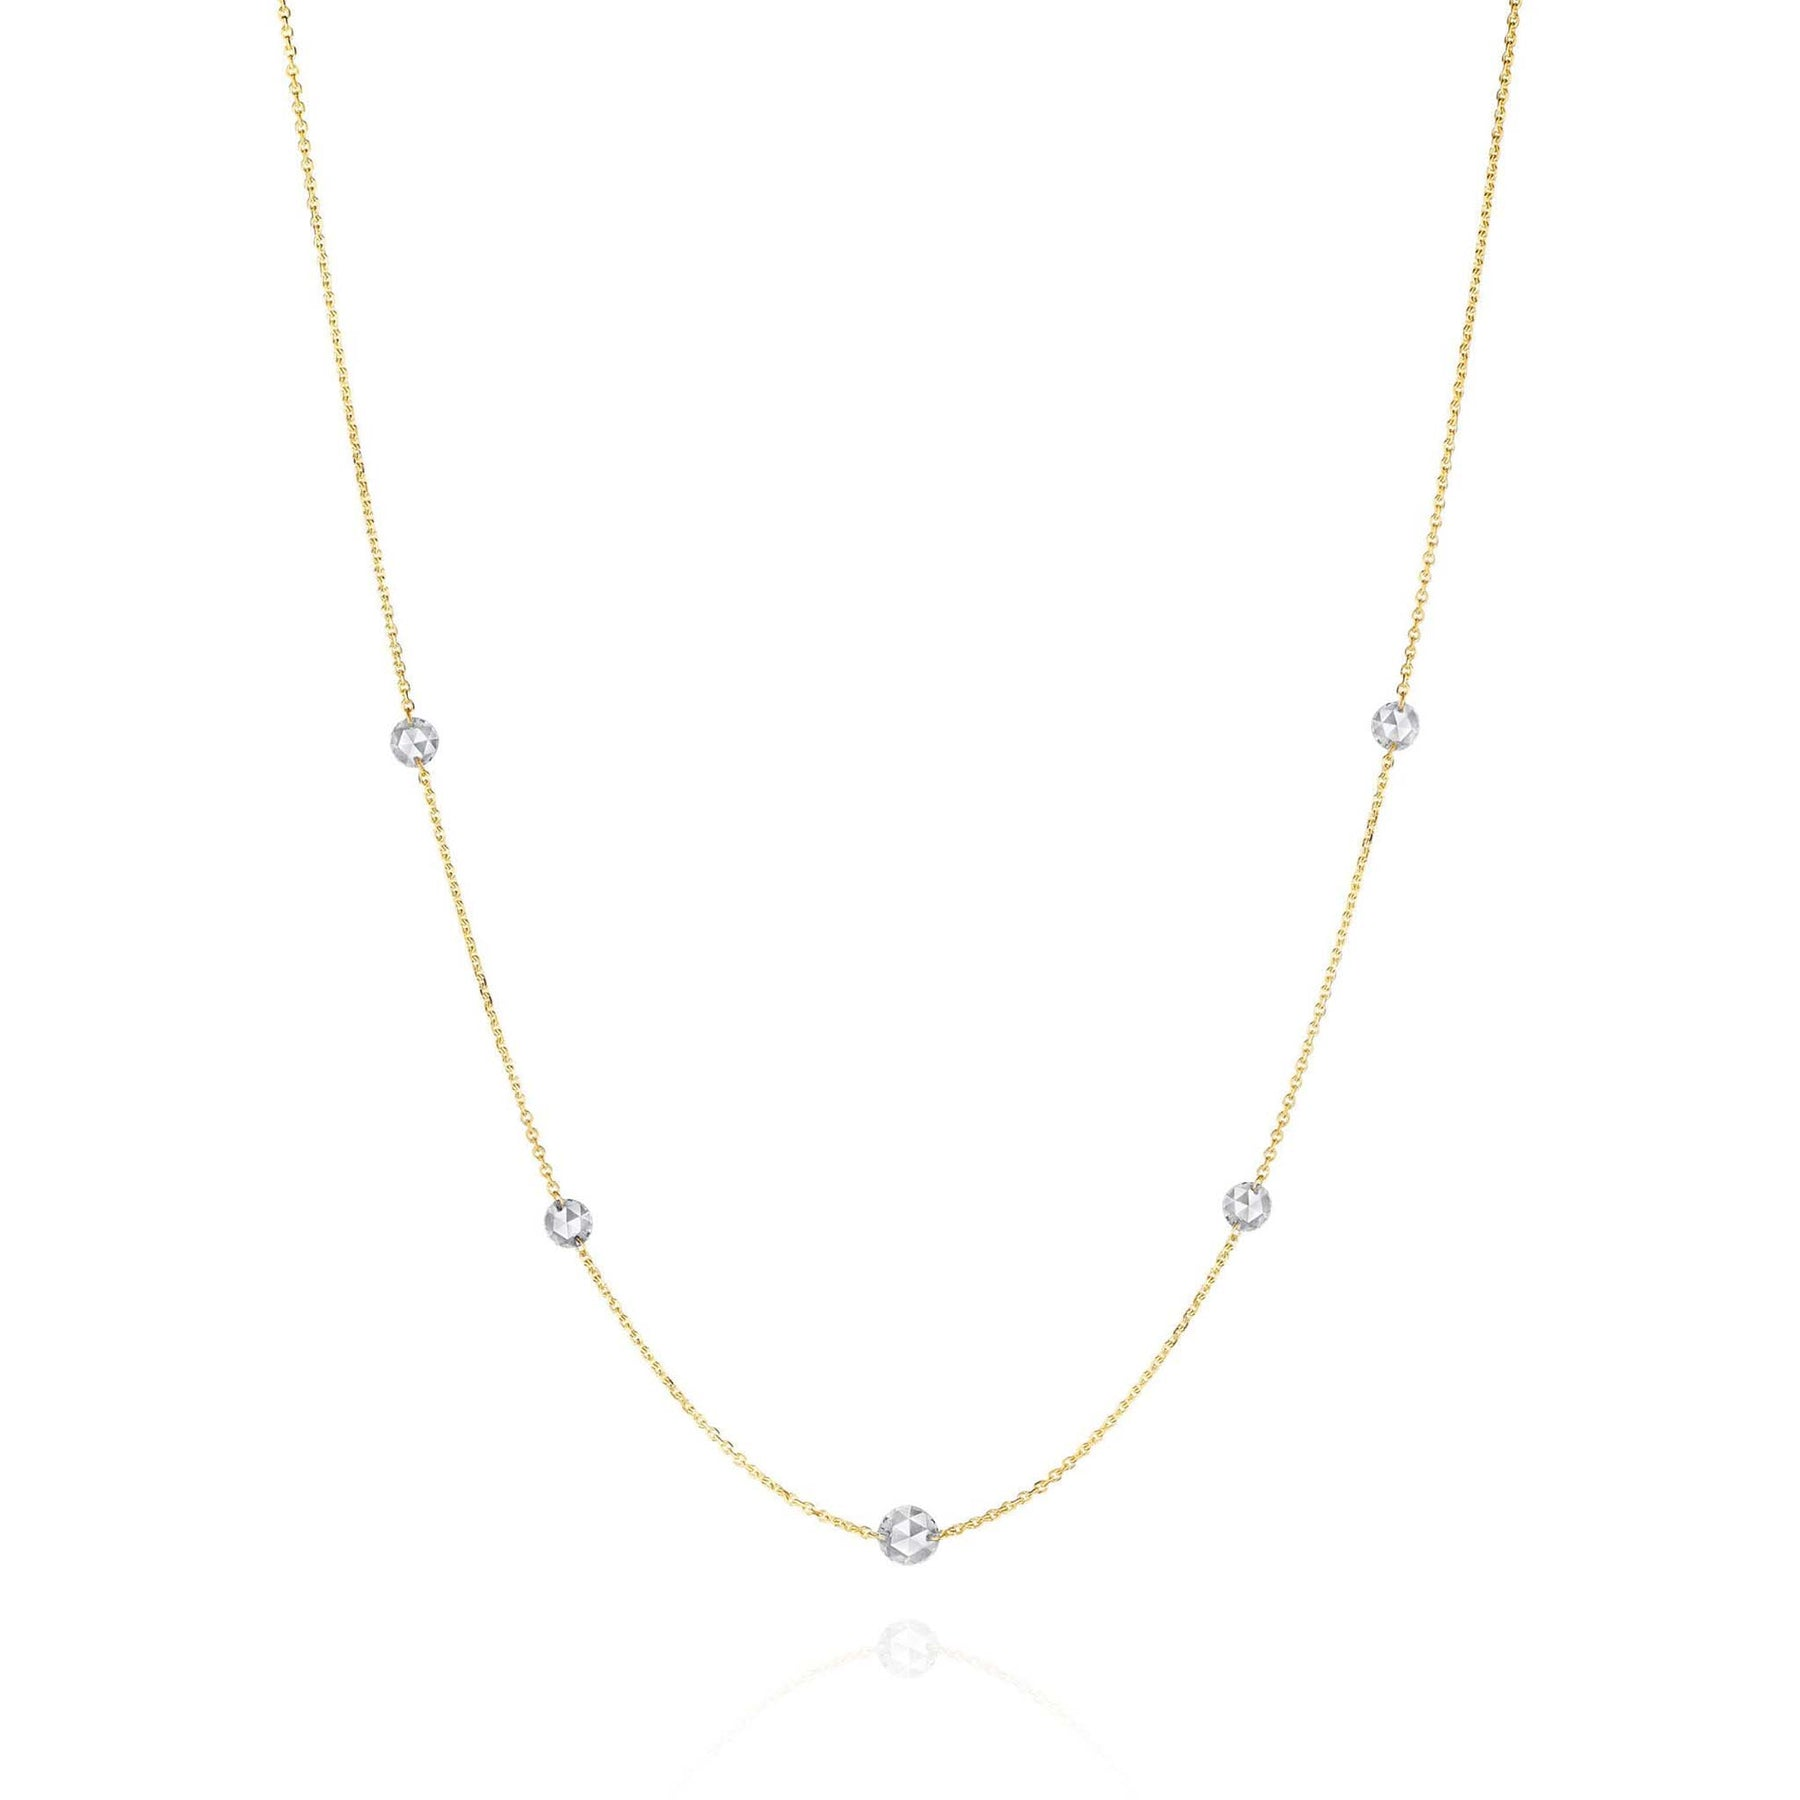 Mimi-Rosette-Couture-Rose-Cut-Diamond-Necklace_18k Yellow Gold